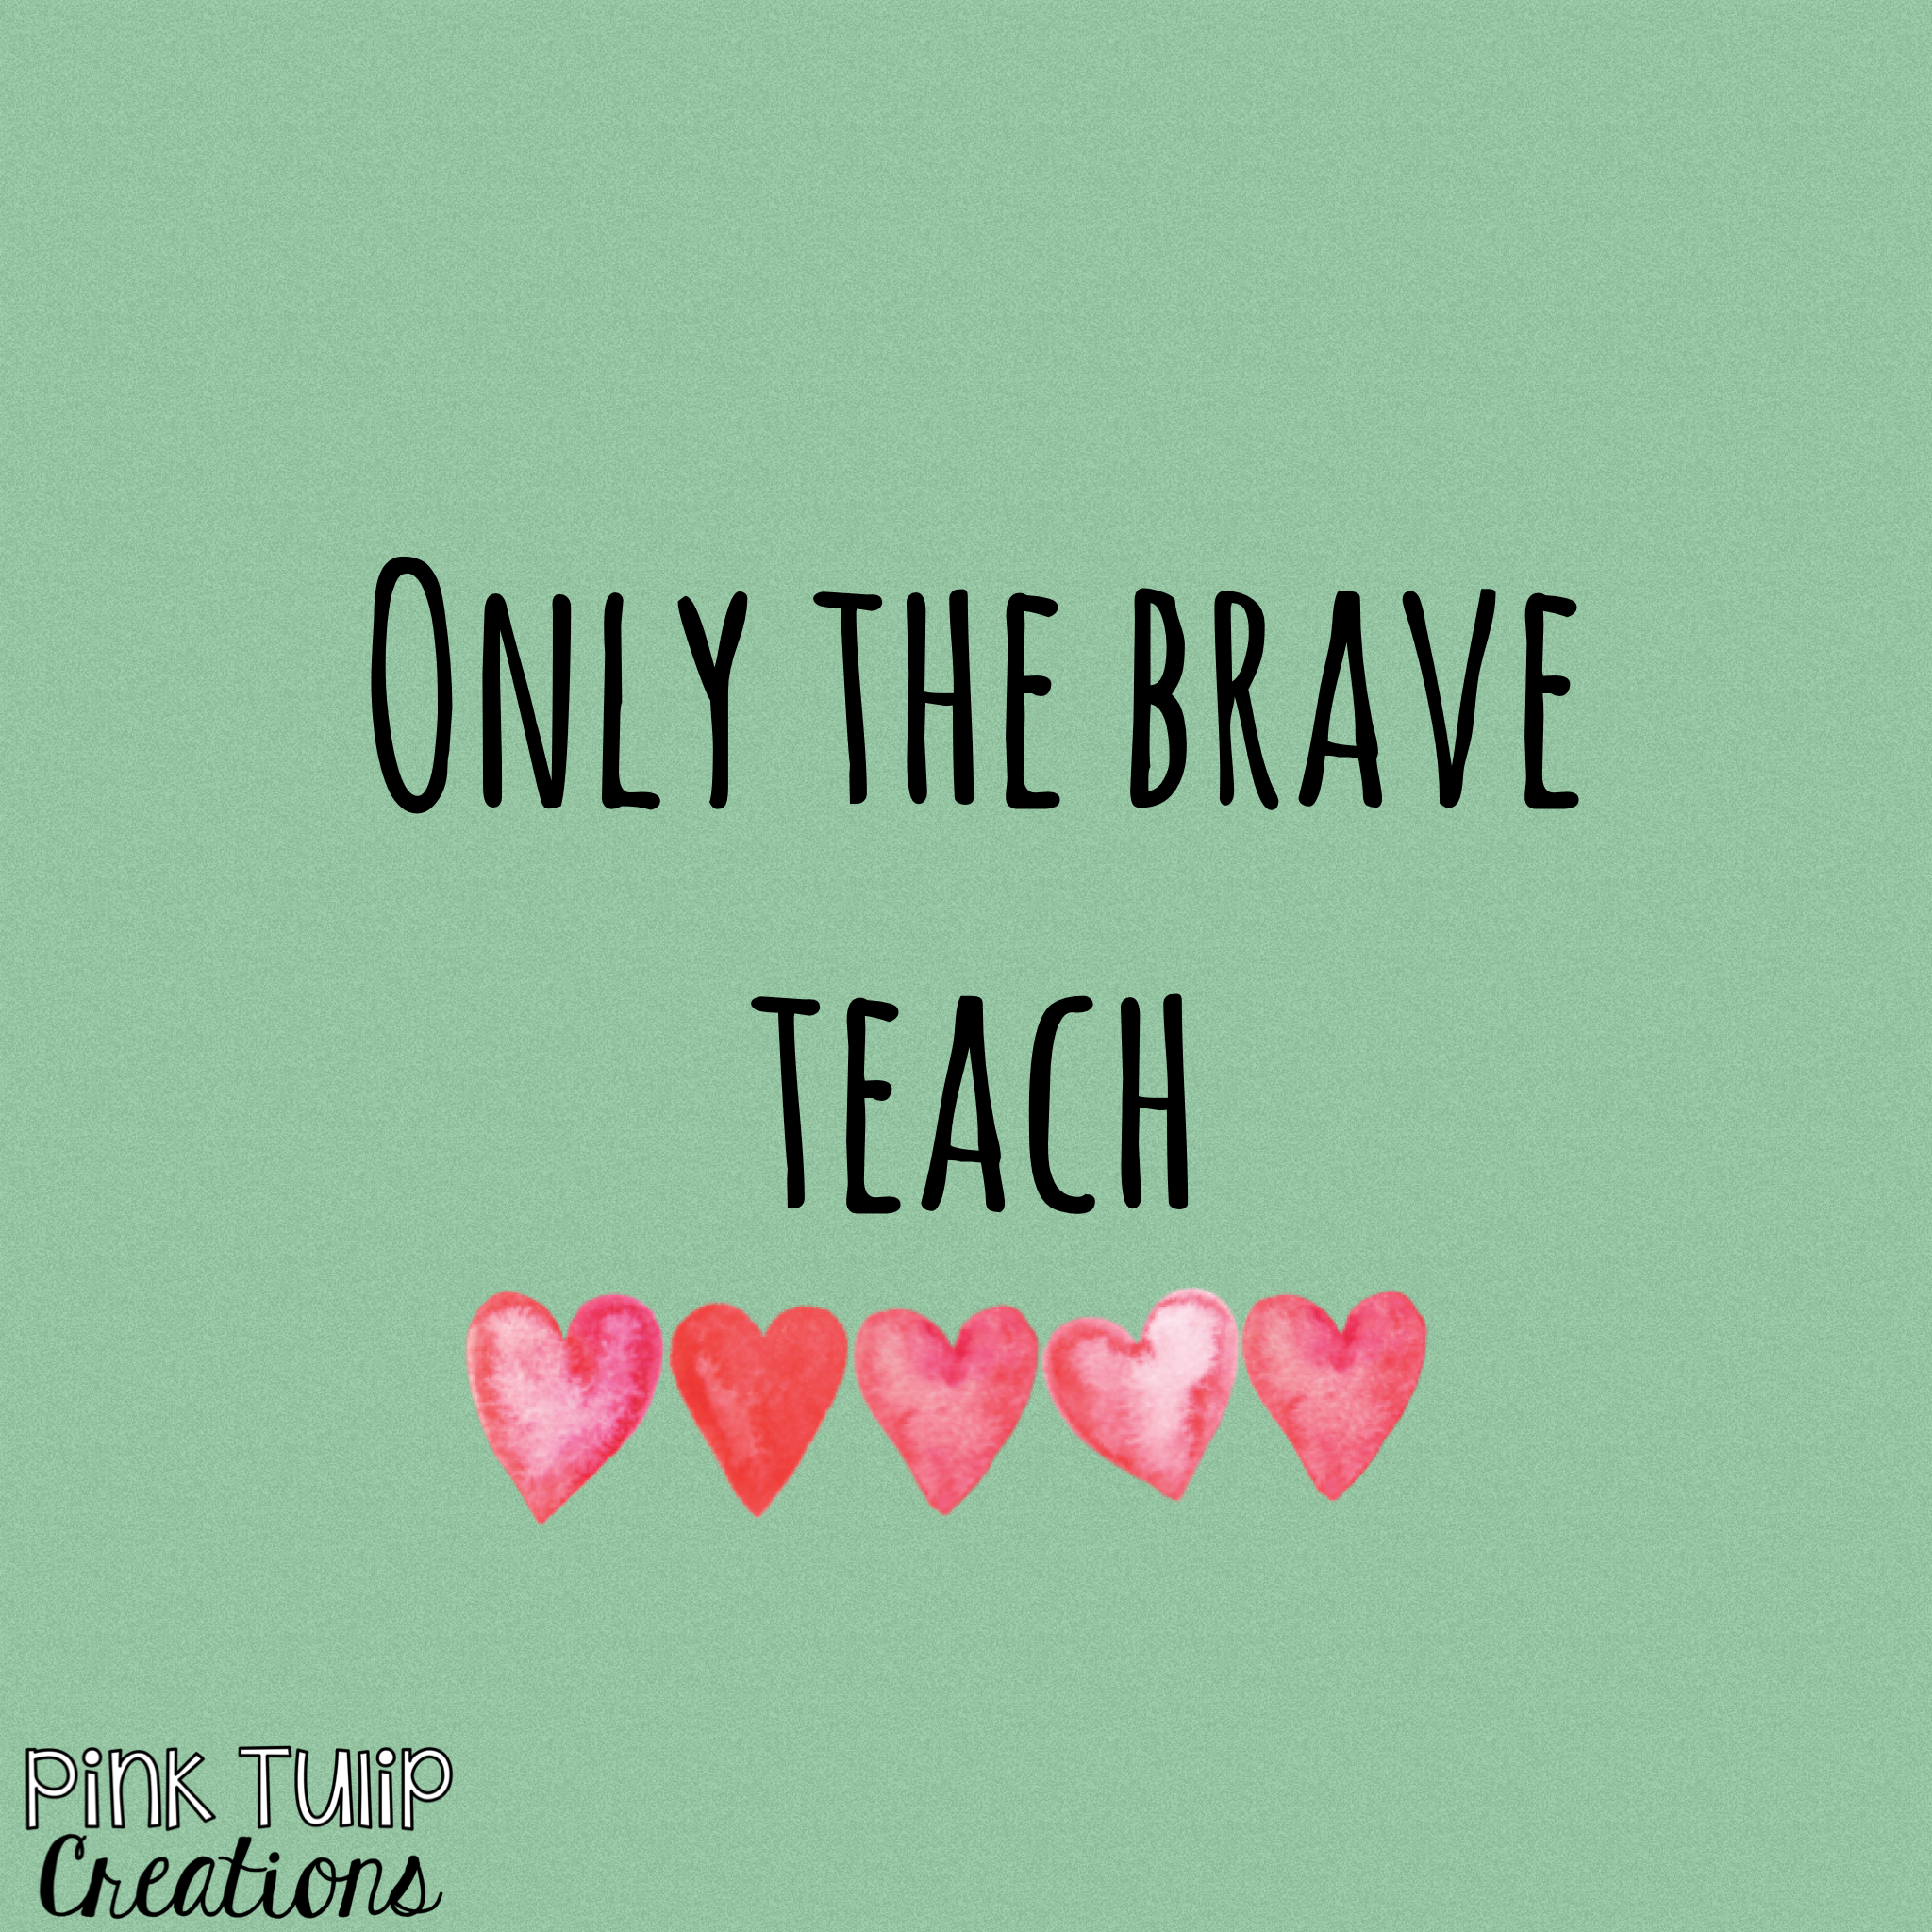 Only the brave teach teaching quotes, educational